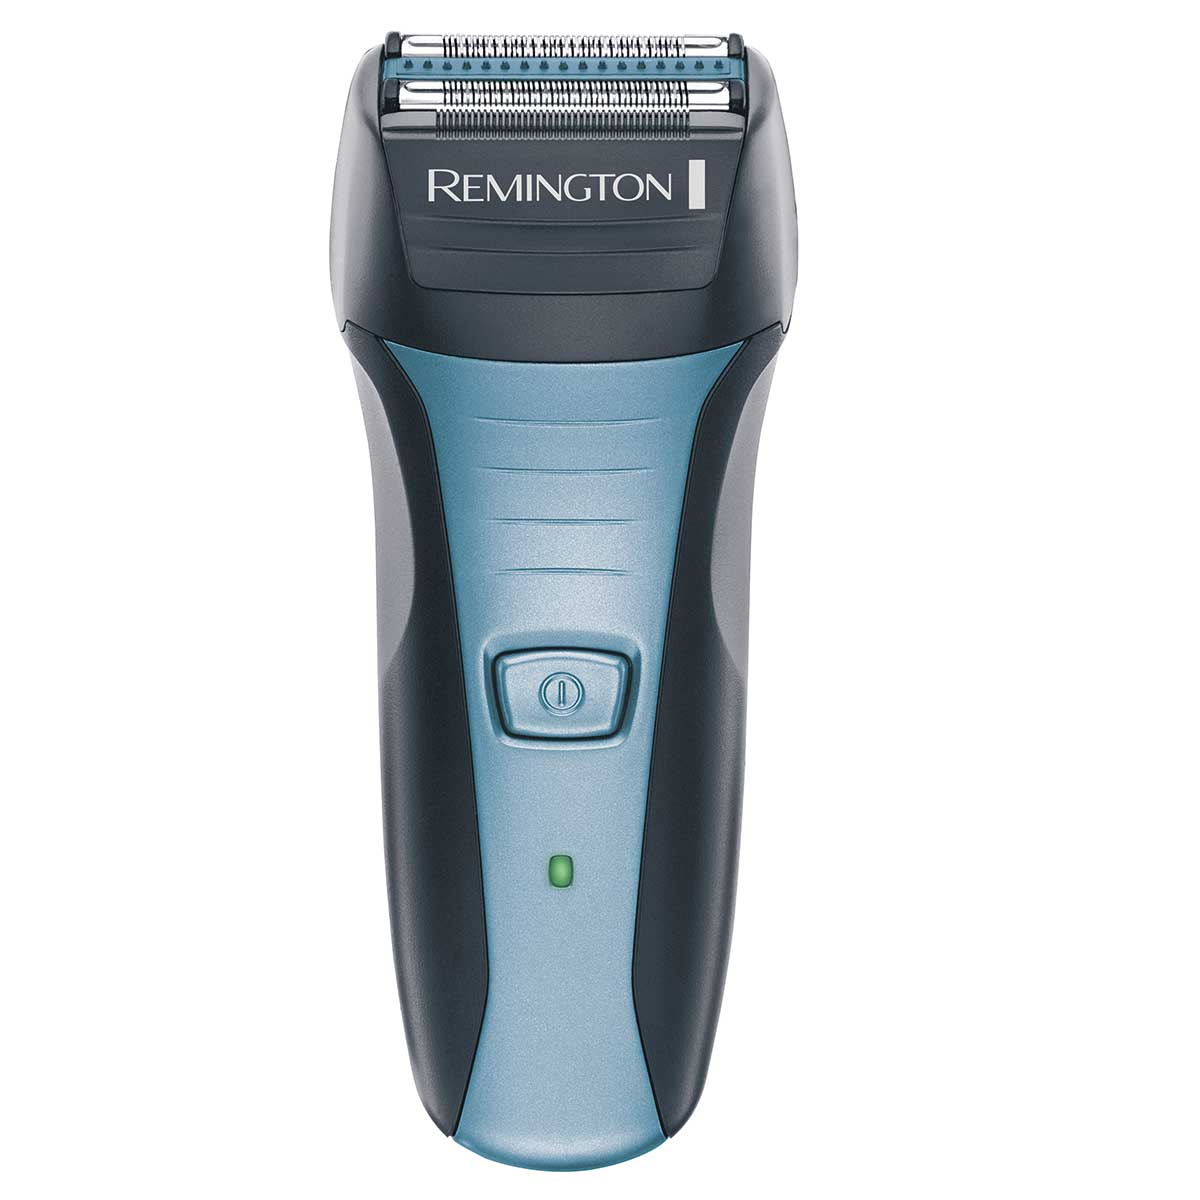 Remington barbermaskine - SF4880